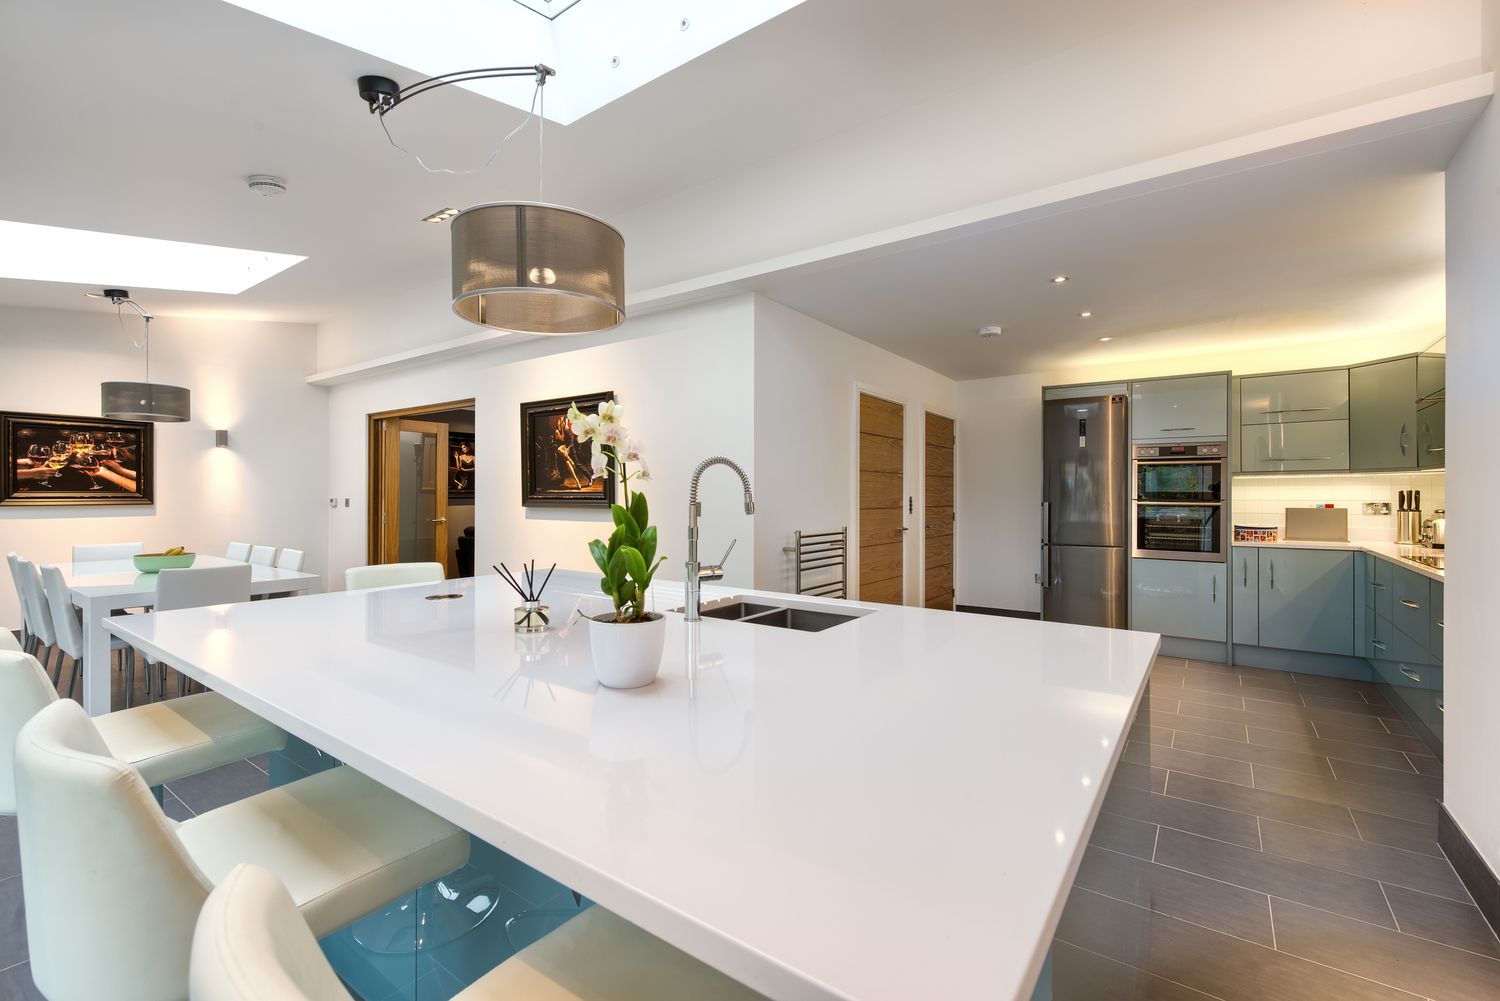 Kitchen view of a lighting house extension by Harvey Norman Architects Cambridge